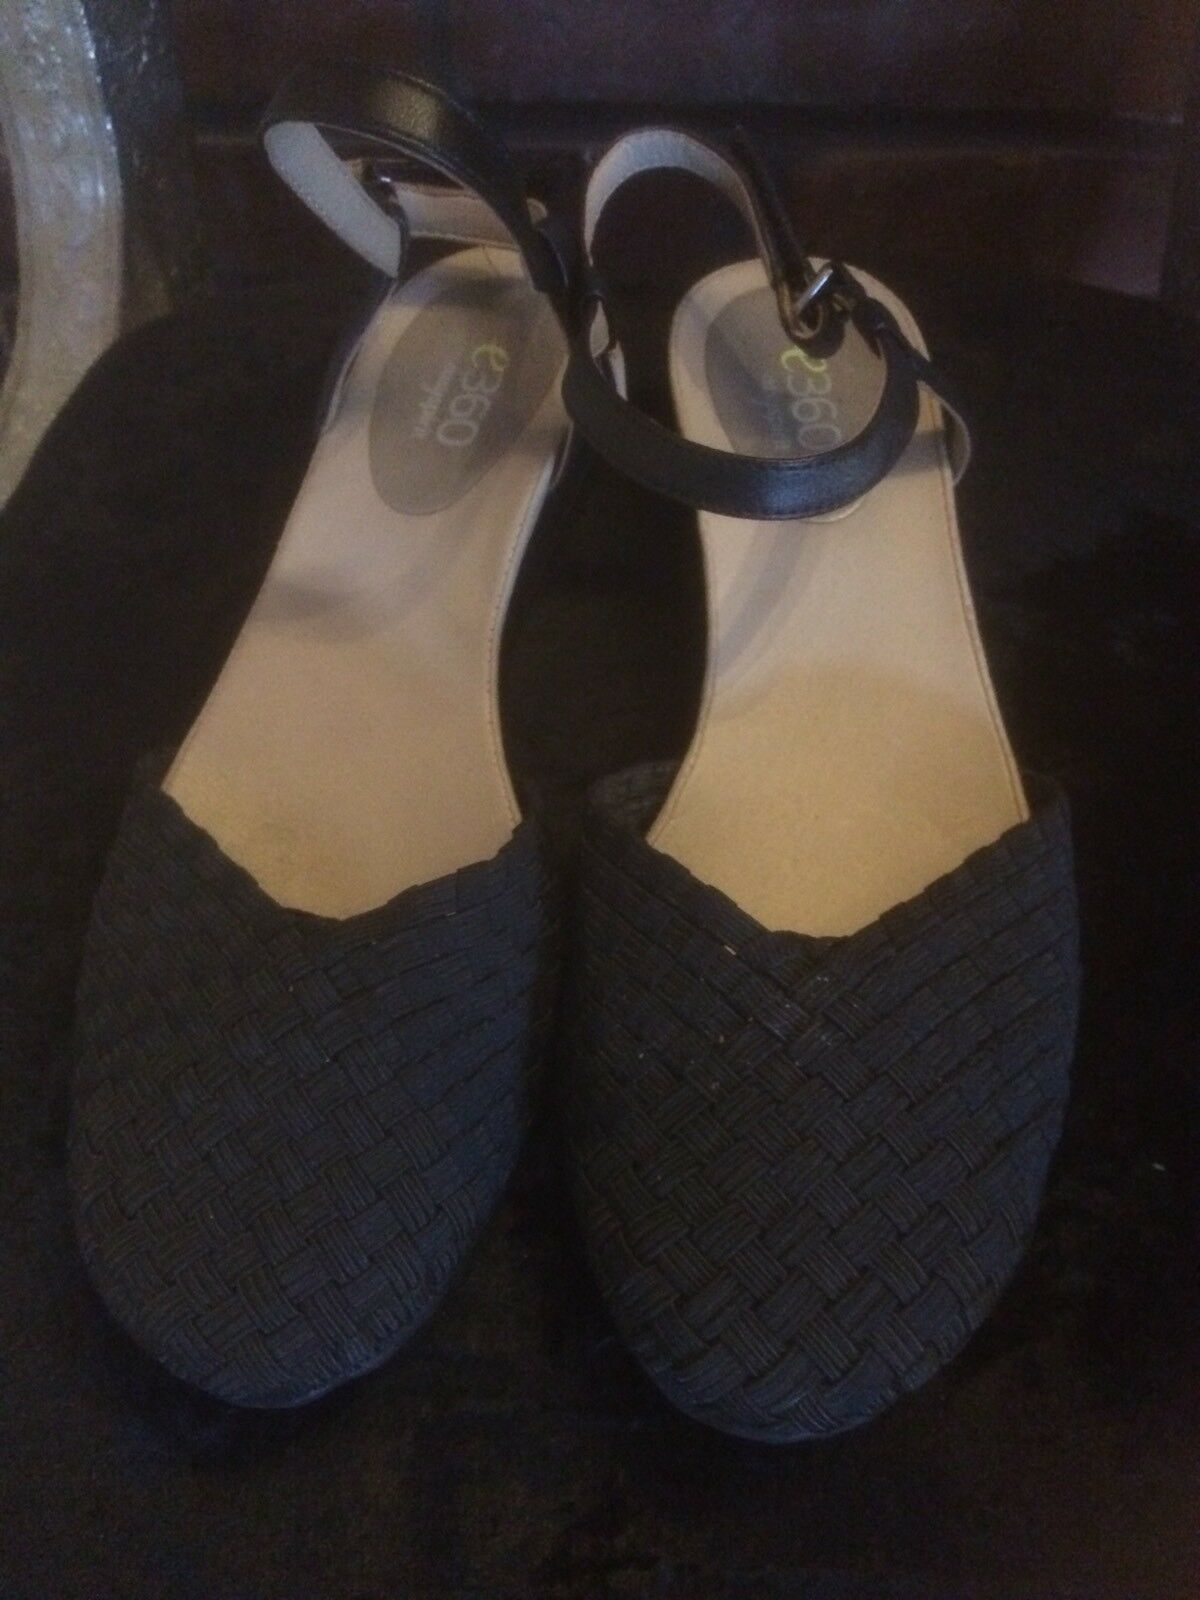 Easy Leather Spirit E360 Strappy Black Leather Easy Sandles. Size 6 36c070